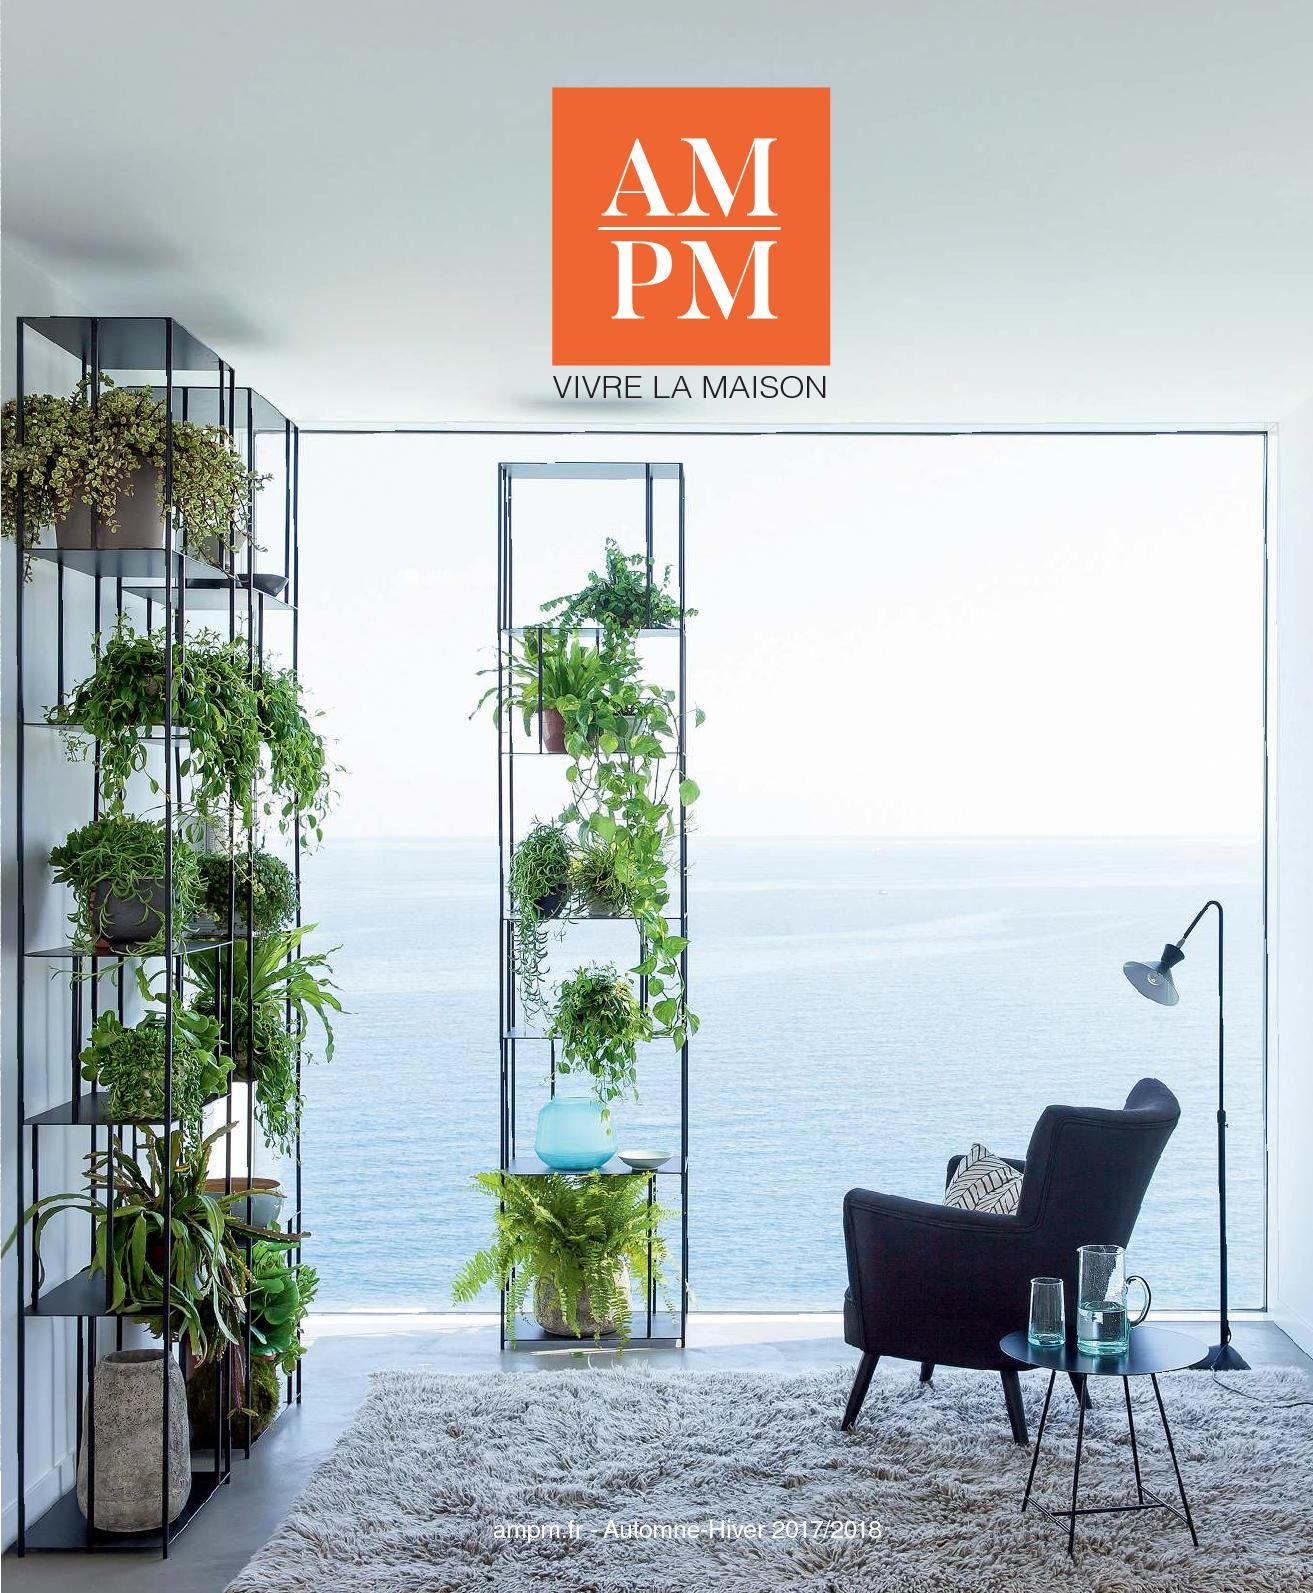 Nouvelle Collection Am Pm Pour La Maison Catalogue Automne Hiver 2017 2018 Pour Le Mobilier Contemporain Pour Mobilier Contemporain Am Pm Catalogue